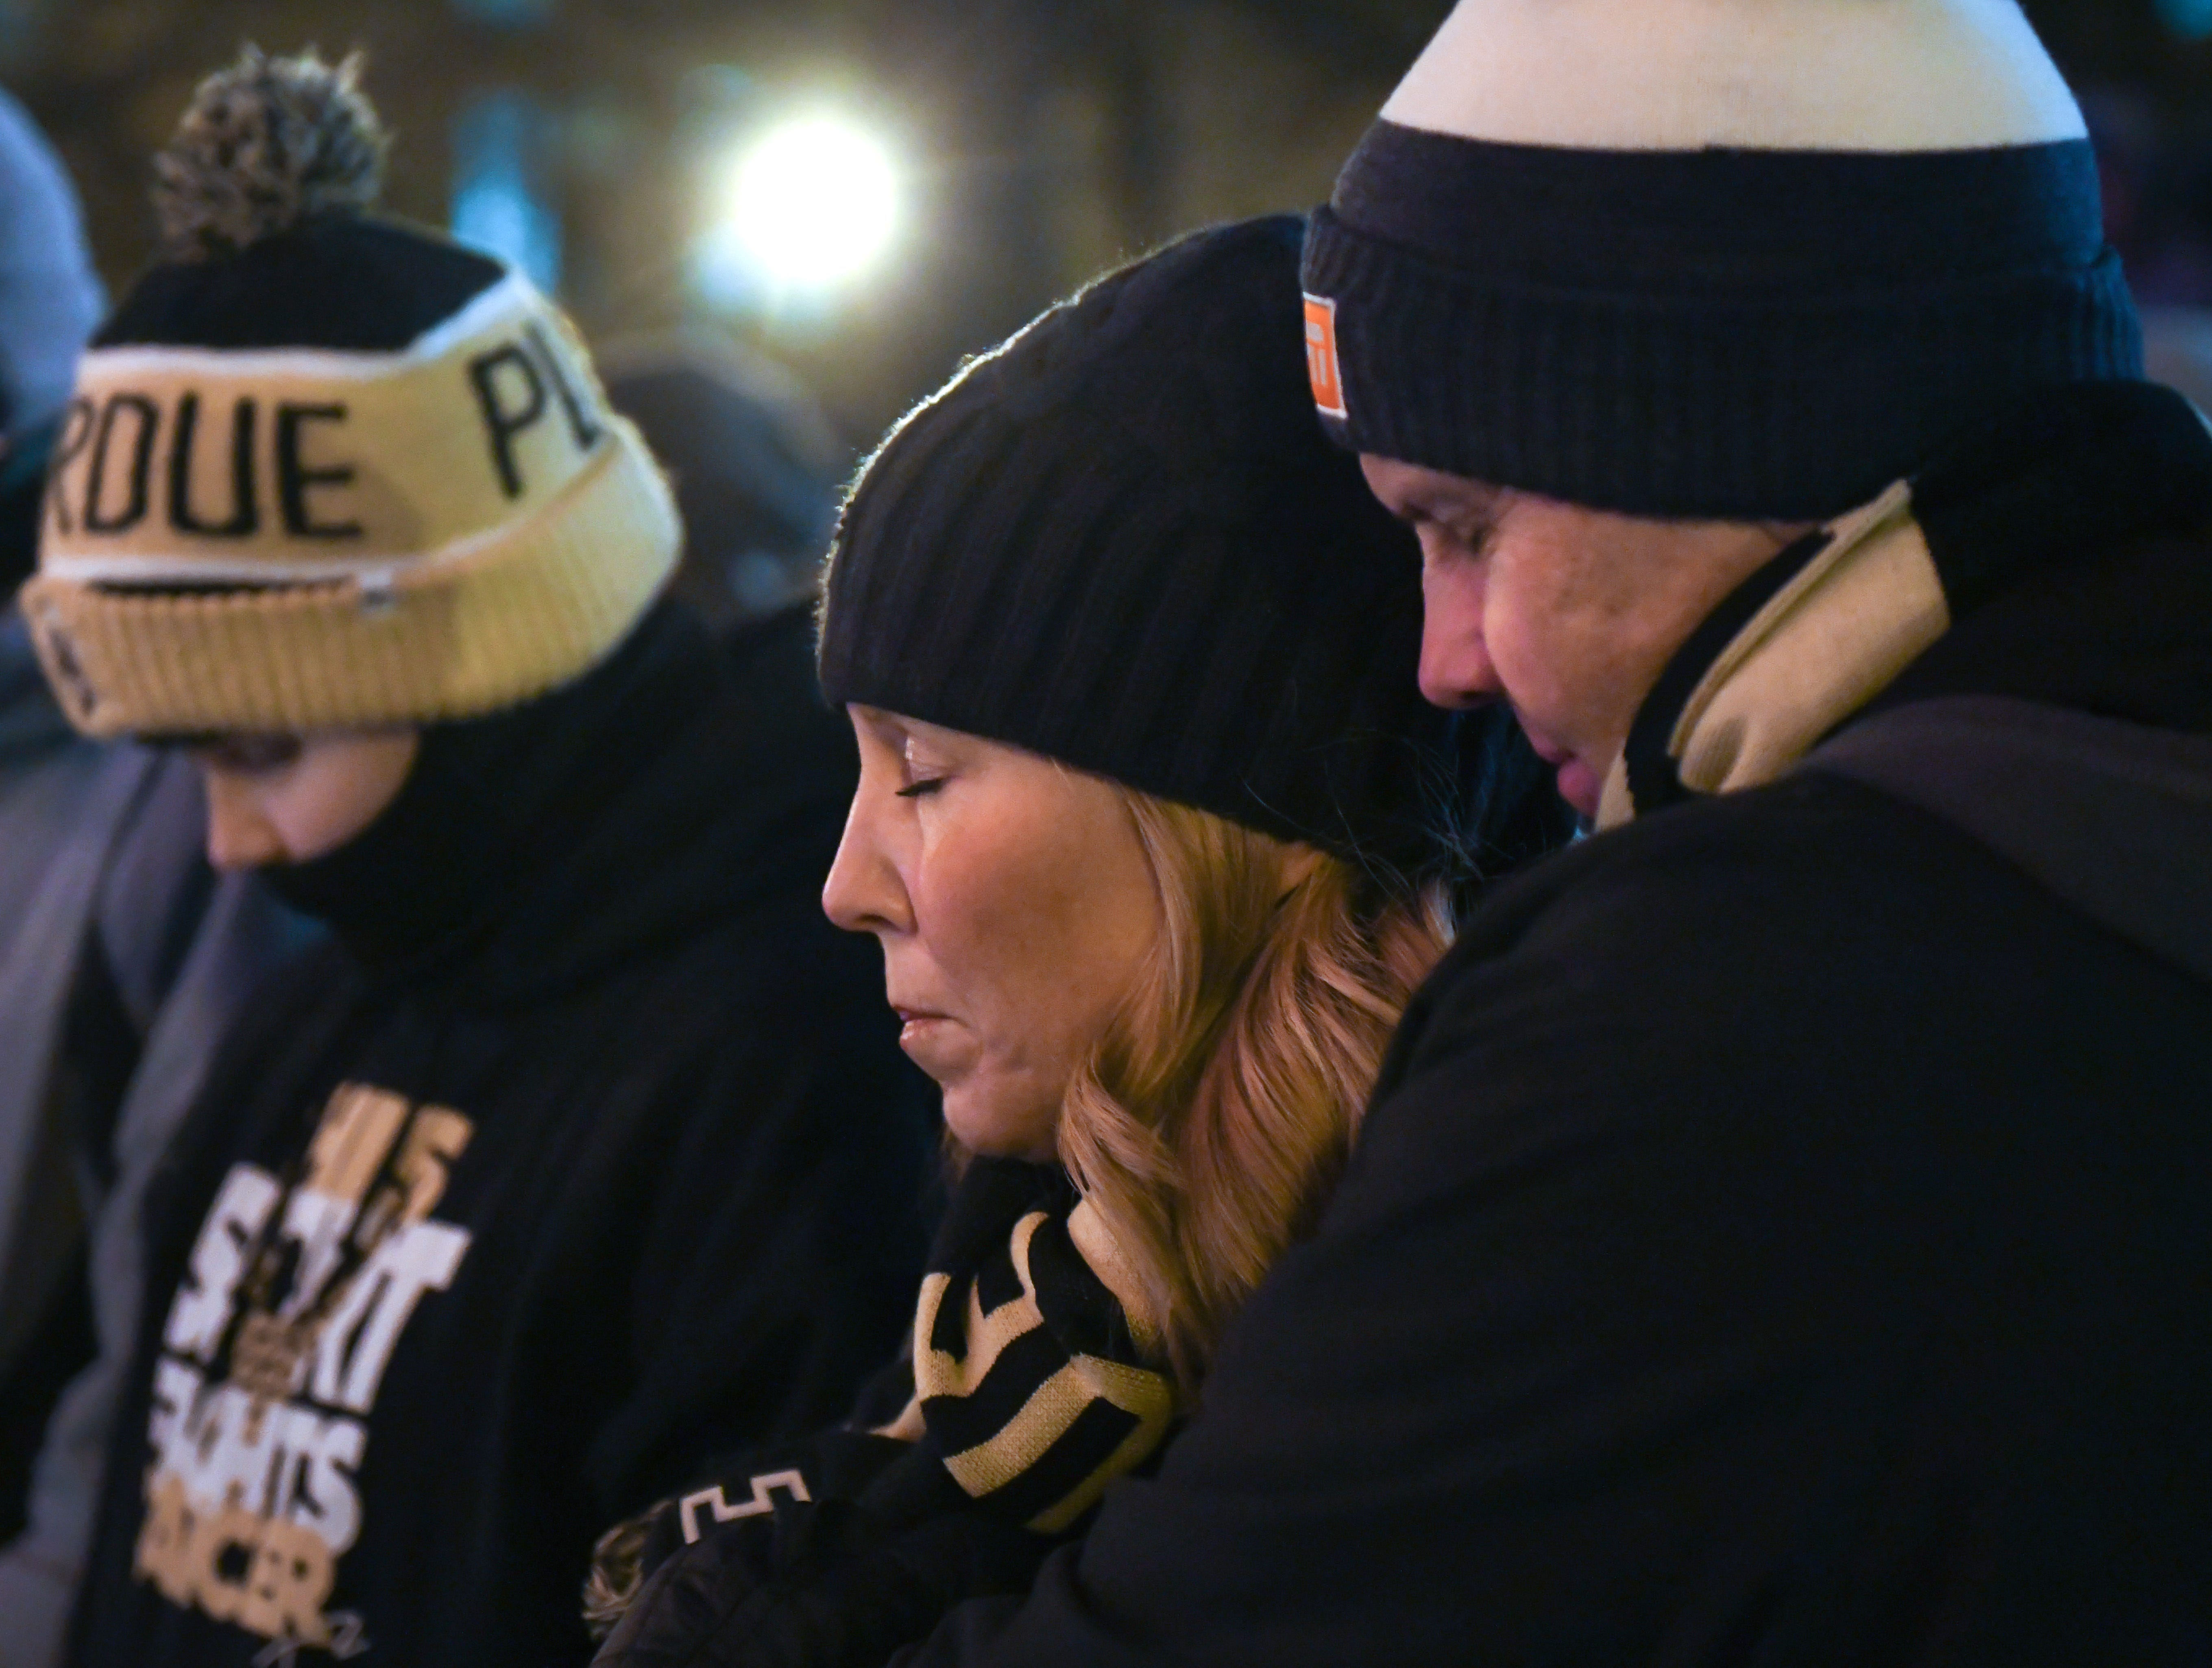 Tony and Kelly Trent pray during a memorial service and candlelight vigil for their son Tyler at Purdue University in West Lafayette on January 9, 2019.